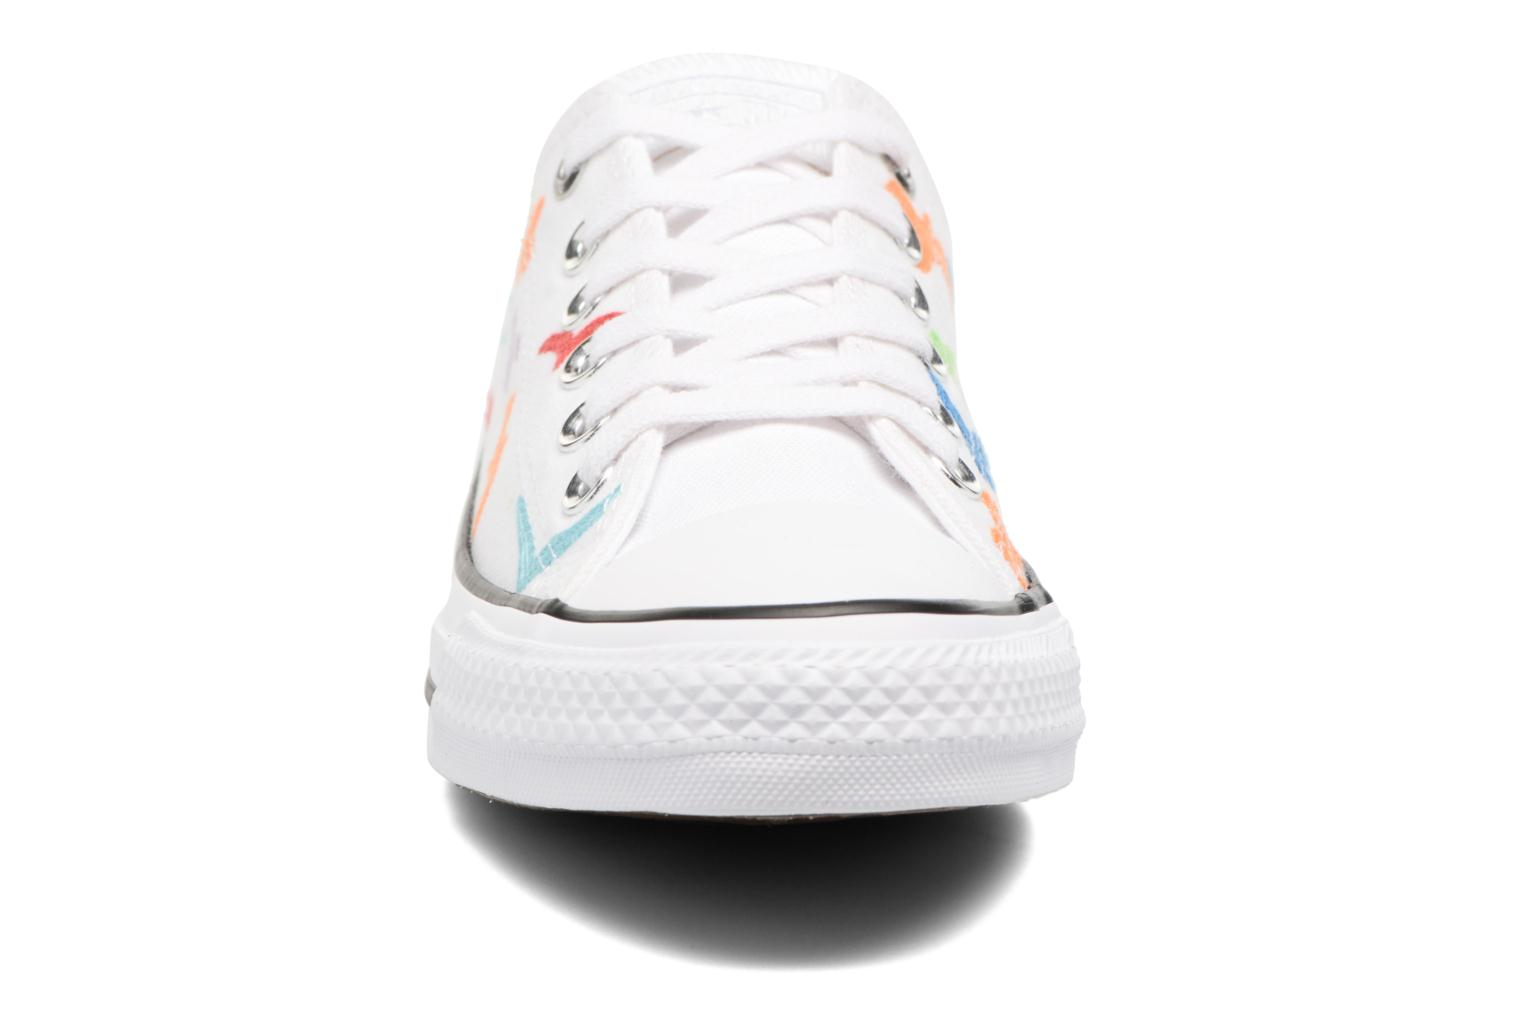 Baskets Converse Chuck Taylor All Star Mara Hoffman Rainbow Birds Ox Blanc vue portées chaussures